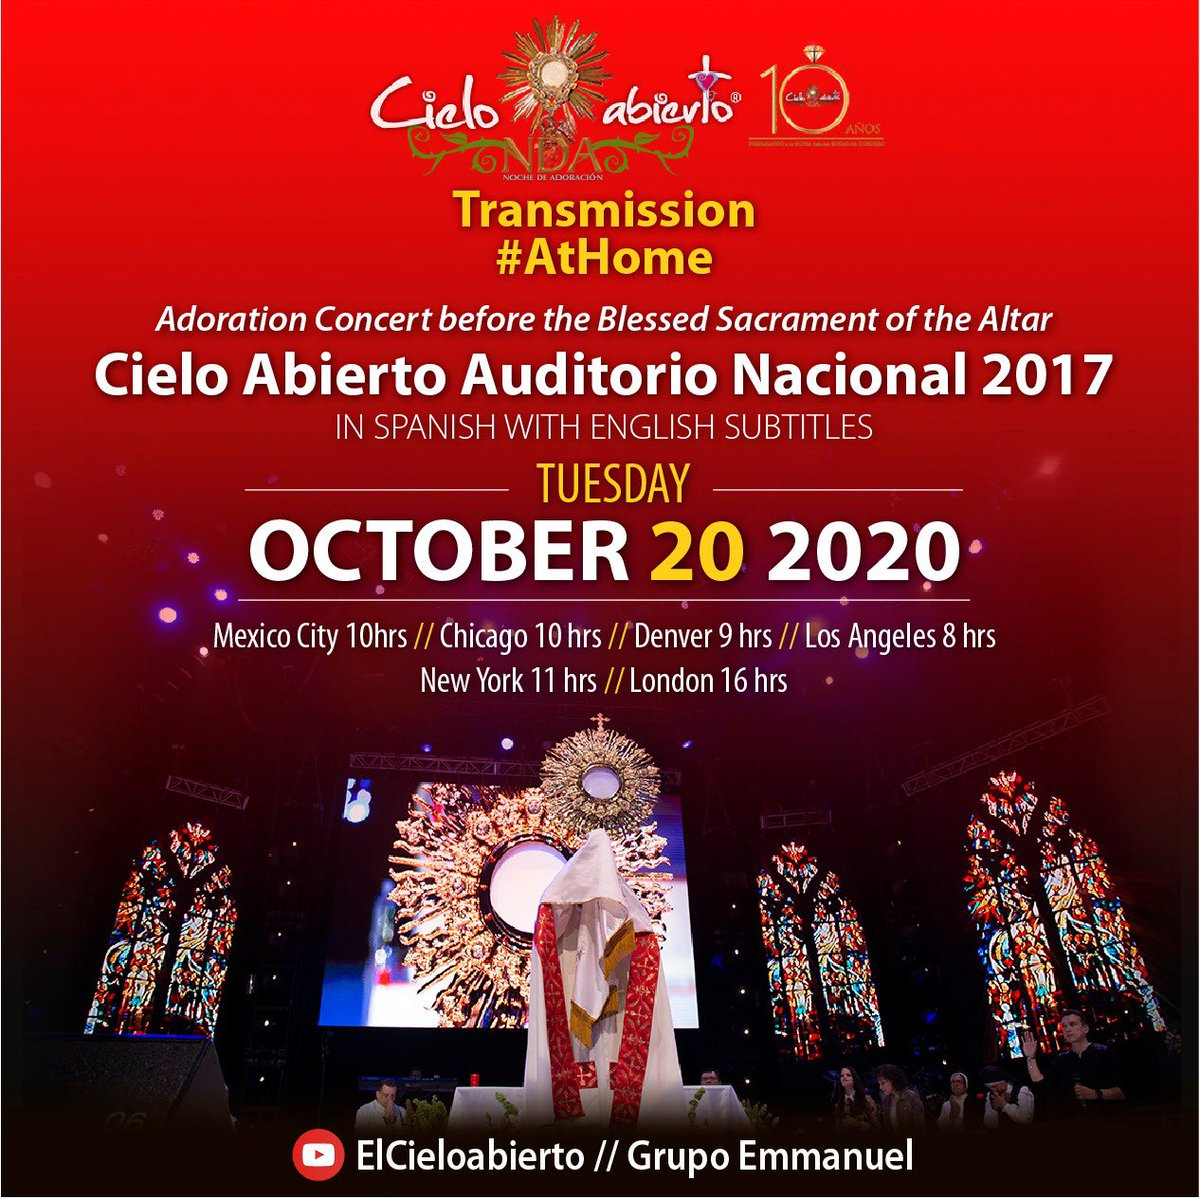 Today! Transmission #AtHome Adoration Concert before the Blessed Sacrament of the Altar Cielo Abierto Auditorio Nacional 2017. In Spanish with English Subtitles. 🇲🇽 Mexico City 10hrs 🇺🇸Denver 9 hrs 🇺🇸Los Angeles 8 hrs 🇺🇸New York 11 hrs 🇬🇧 London 16 hrs Youtube ElCieloabierto https://t.co/v7496sjJQl